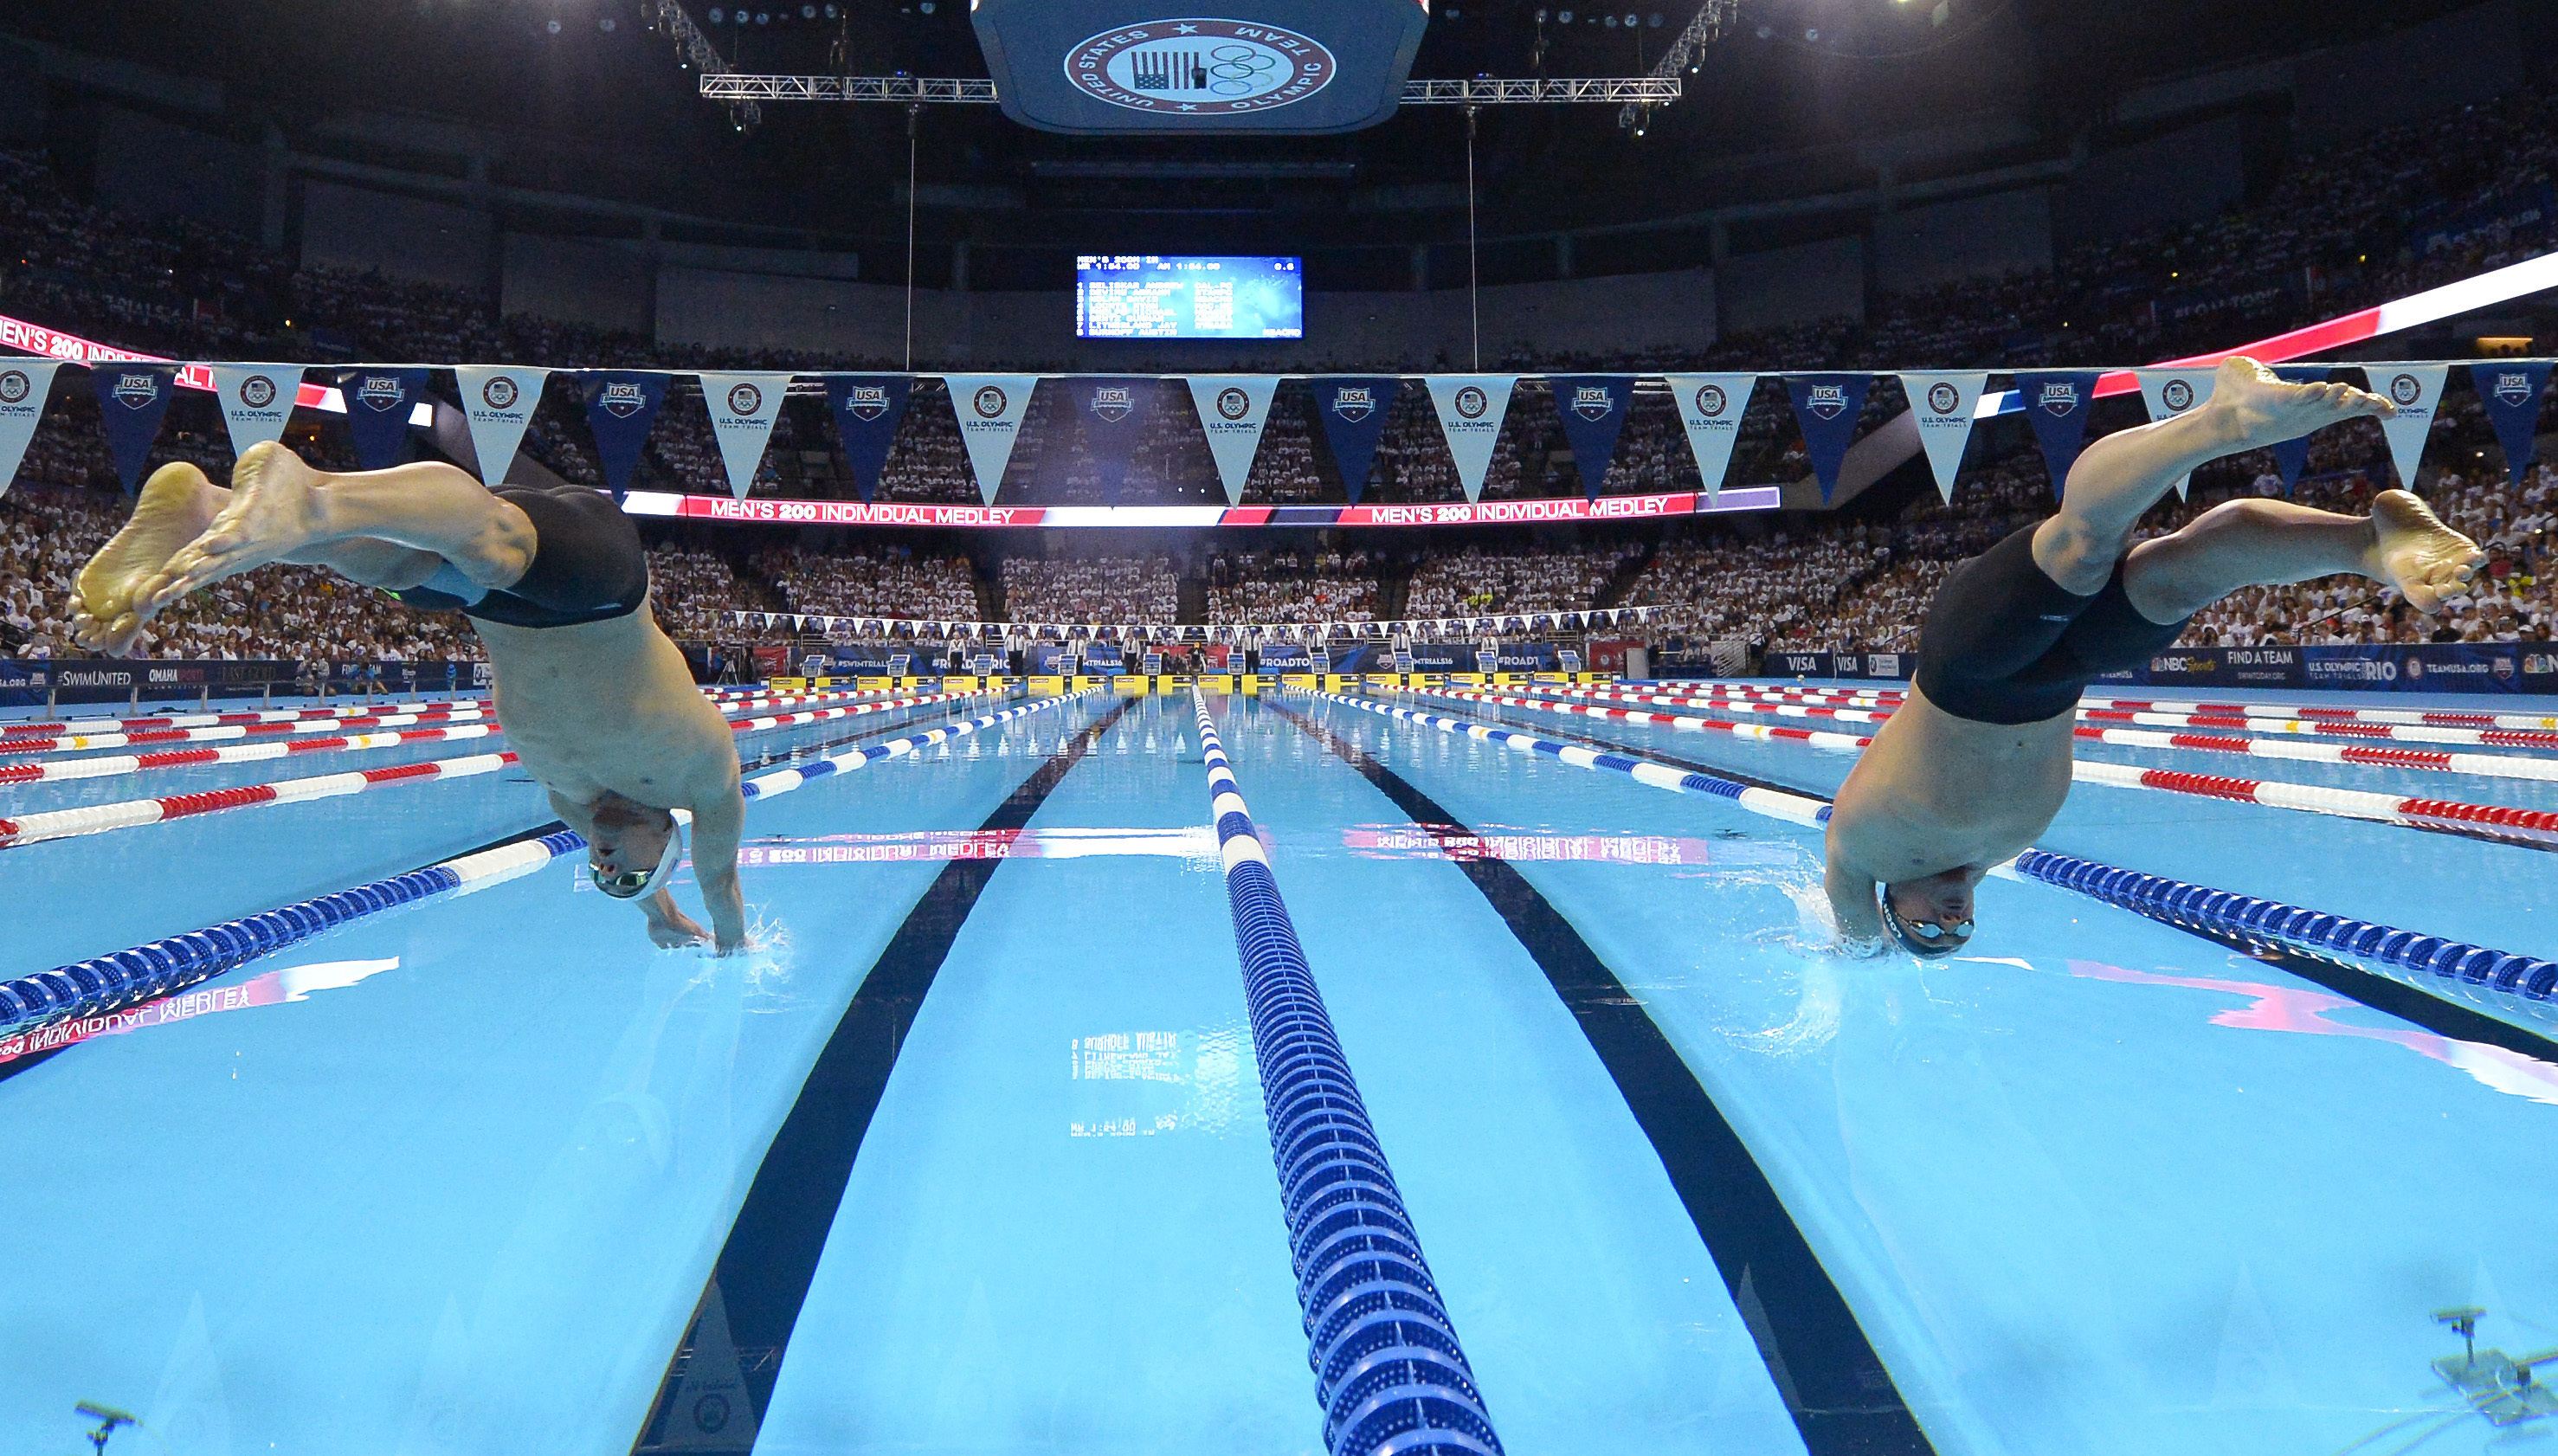 FILE - In this July 1, 2016, file photo, Michael Phelps, left, and Ryan Lochte start the men's 200-meter individual medley at the U.S. Olympic swimming trials, in Omaha, Neb. USA Swimming knew it wanted to return to Omaha for the Olympic trials in 2020, s